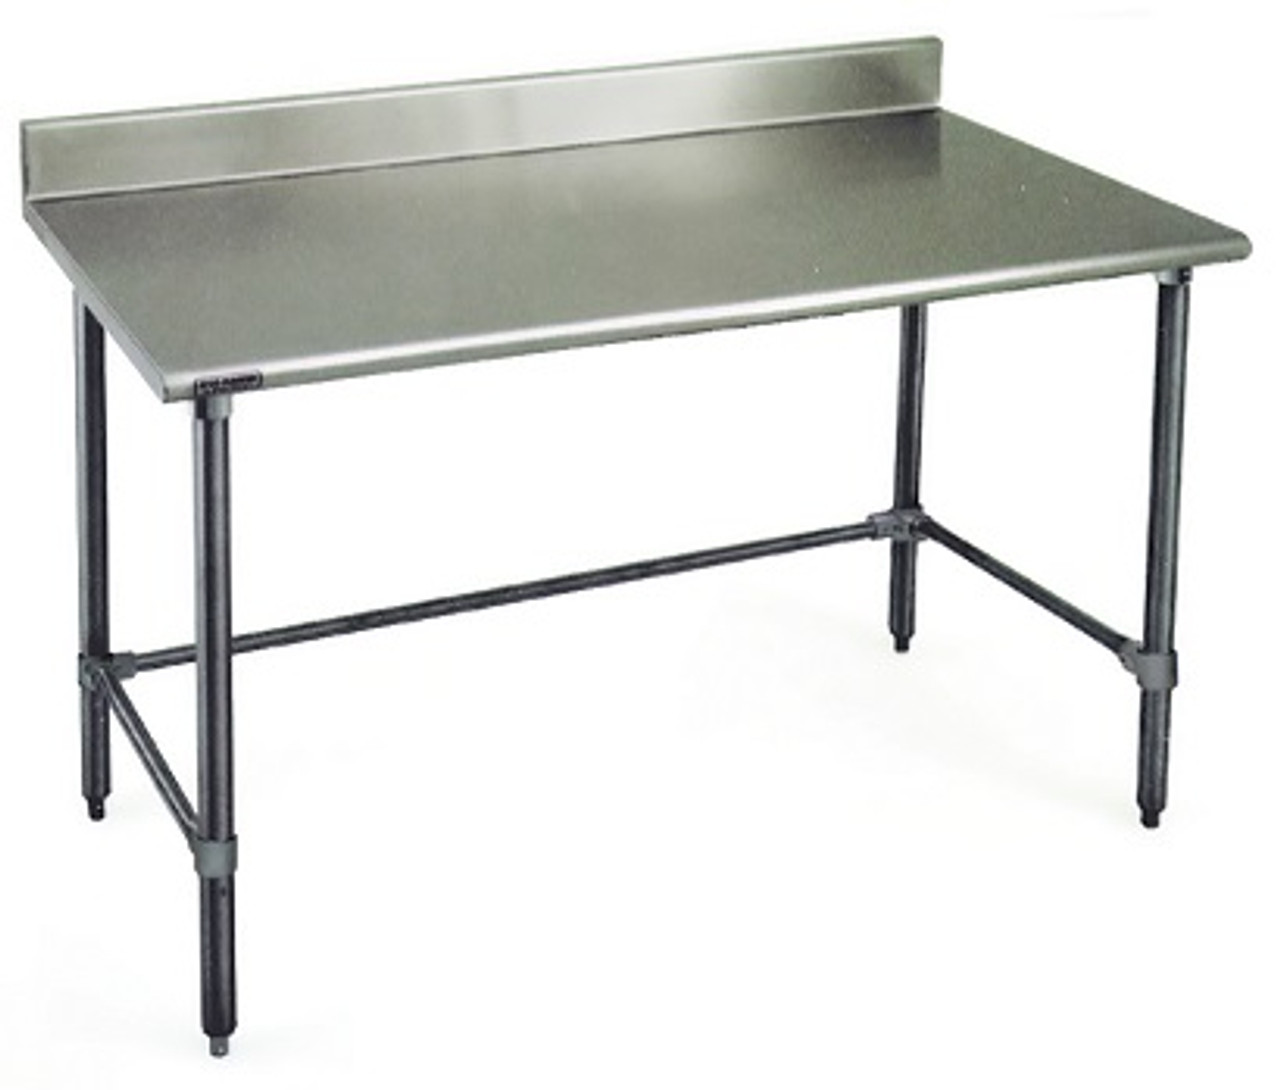 - Stainless Steel Work Table - Eagle, Spec Master, 14/304 Stainless